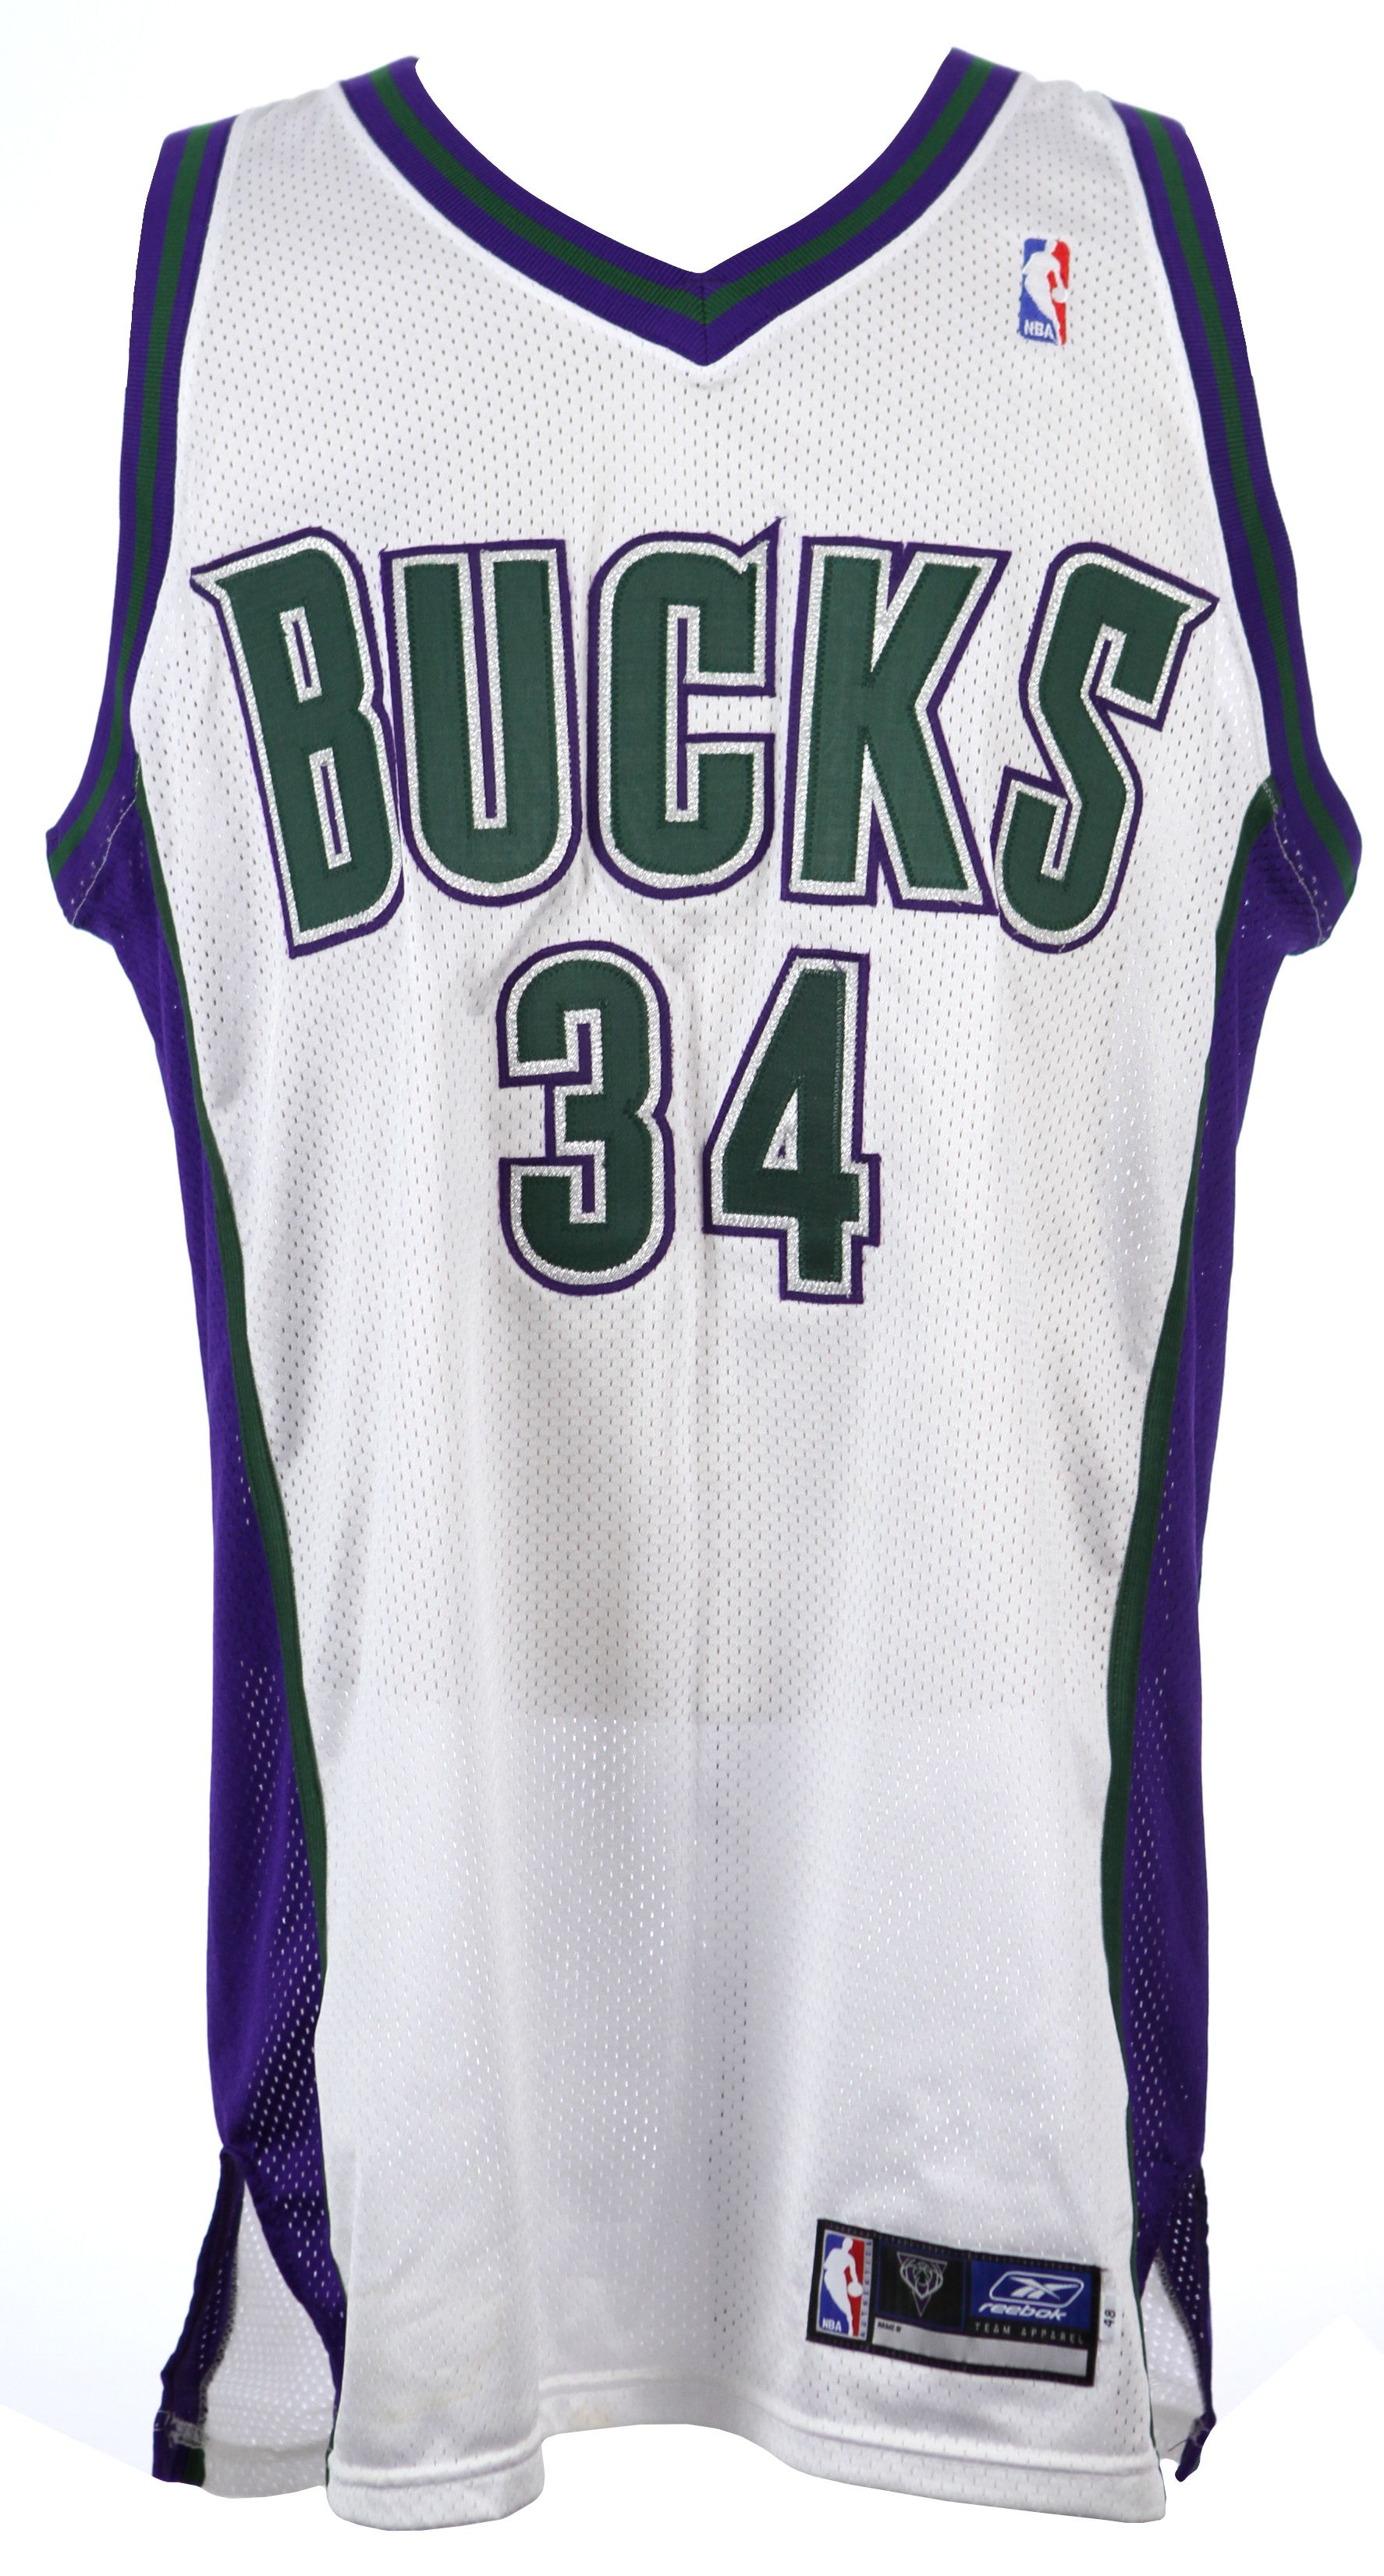 huge selection of 7561b 57ef1 Lot Detail - 1996-2002 Ray Allen Milwaukee Bucks Signed ...